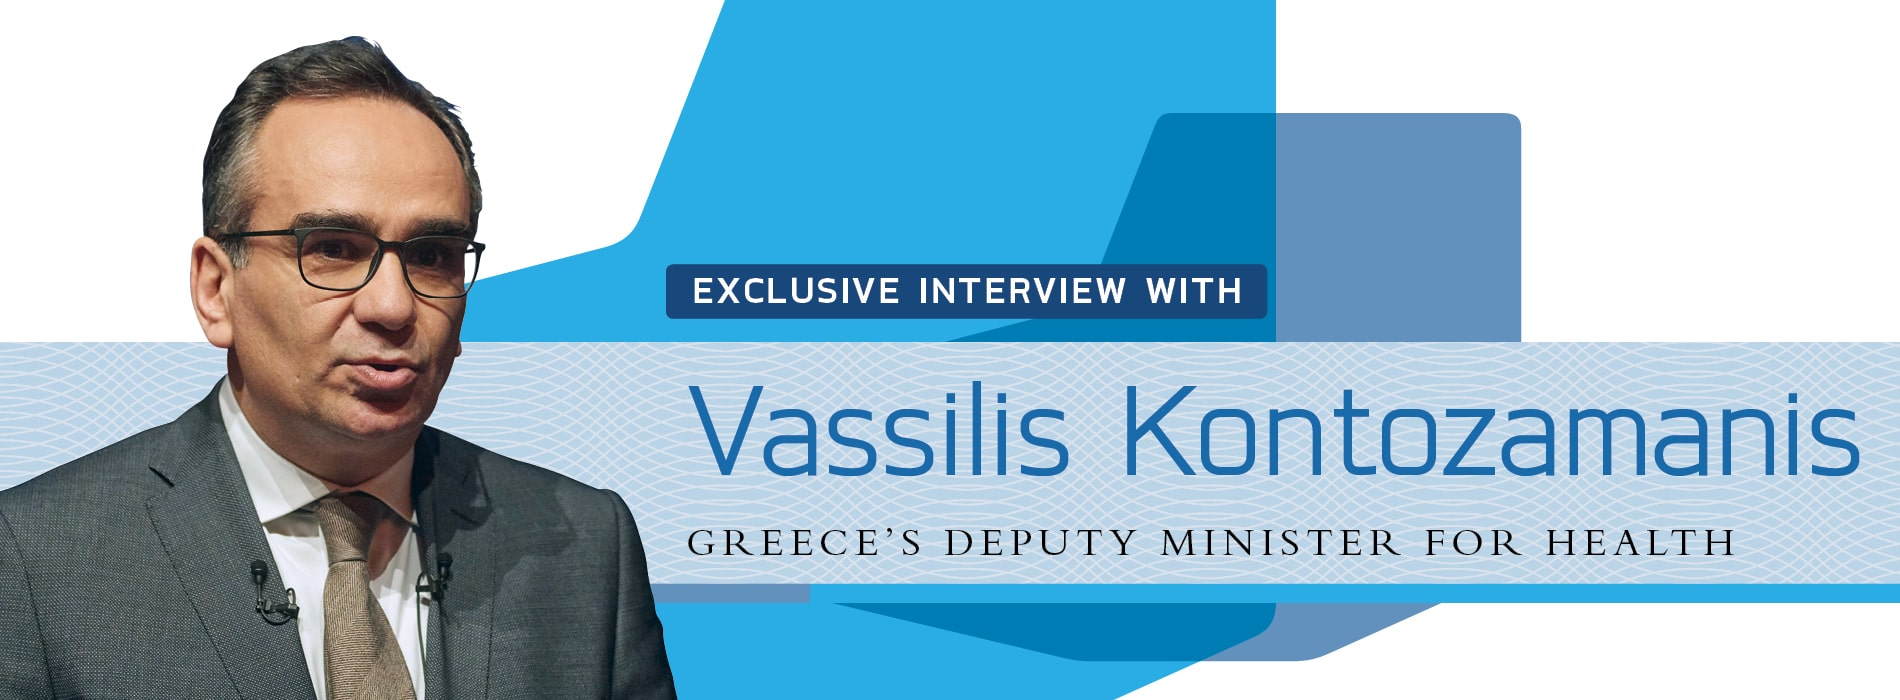 Interview with Vassilis Kontozamanis,Greece's Minister for Health